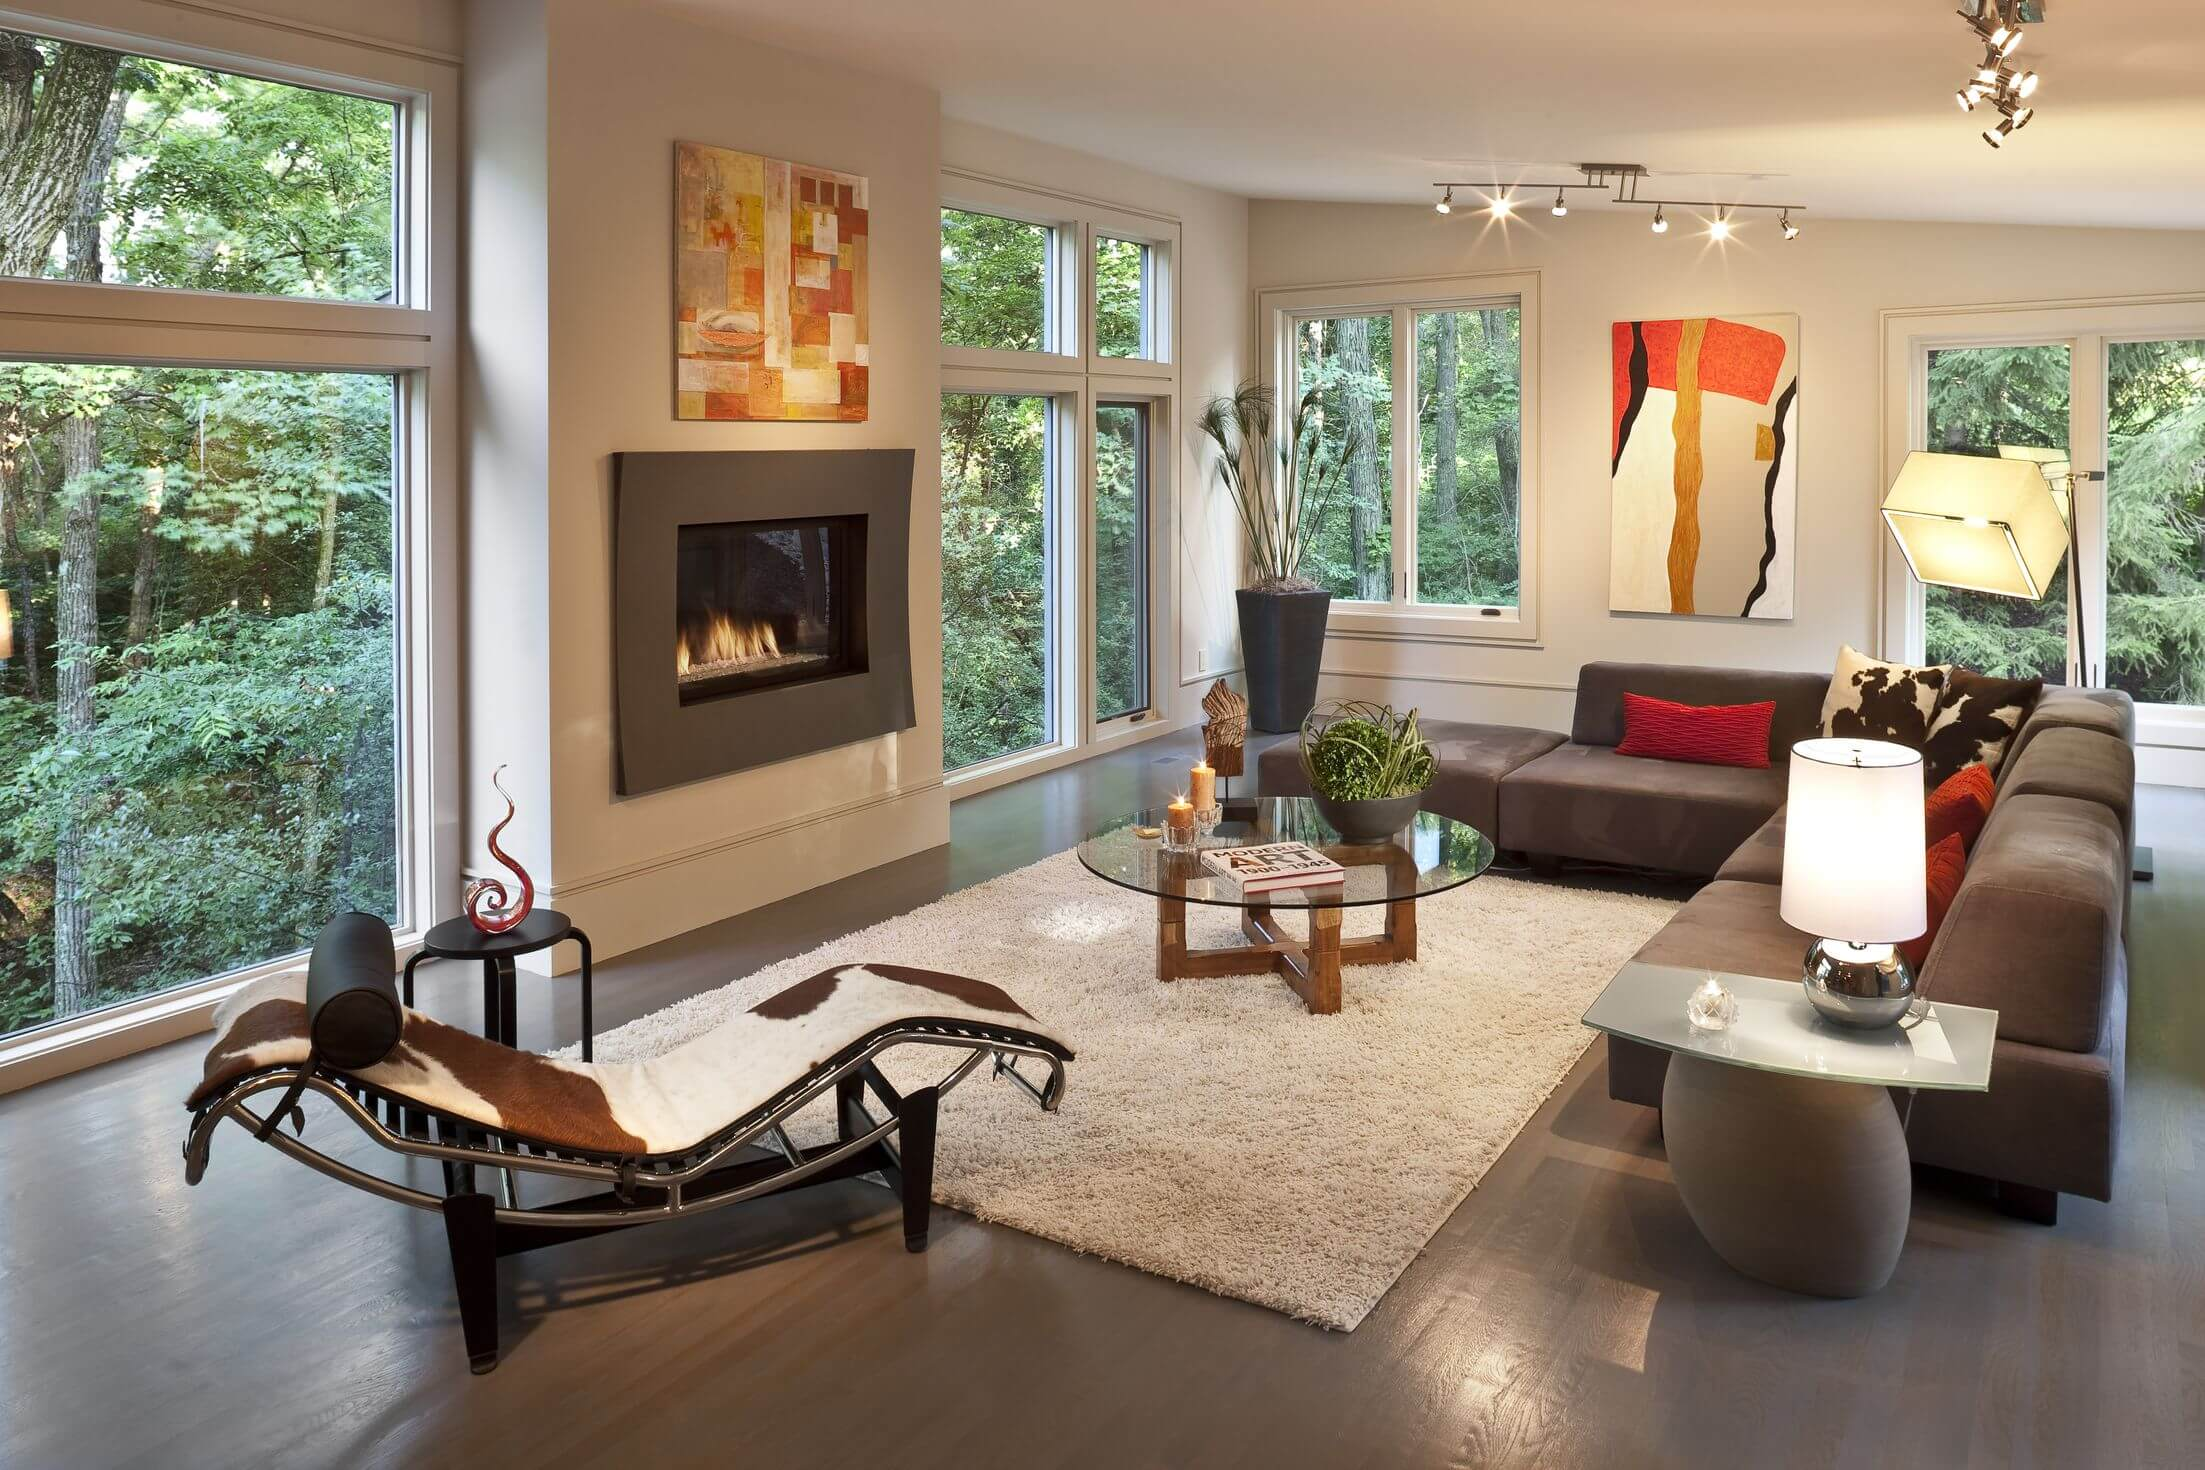 Sloped White Ceiling Over Dark Wood Flooring In This Living Room Holding Modern Armless Brown Sofa